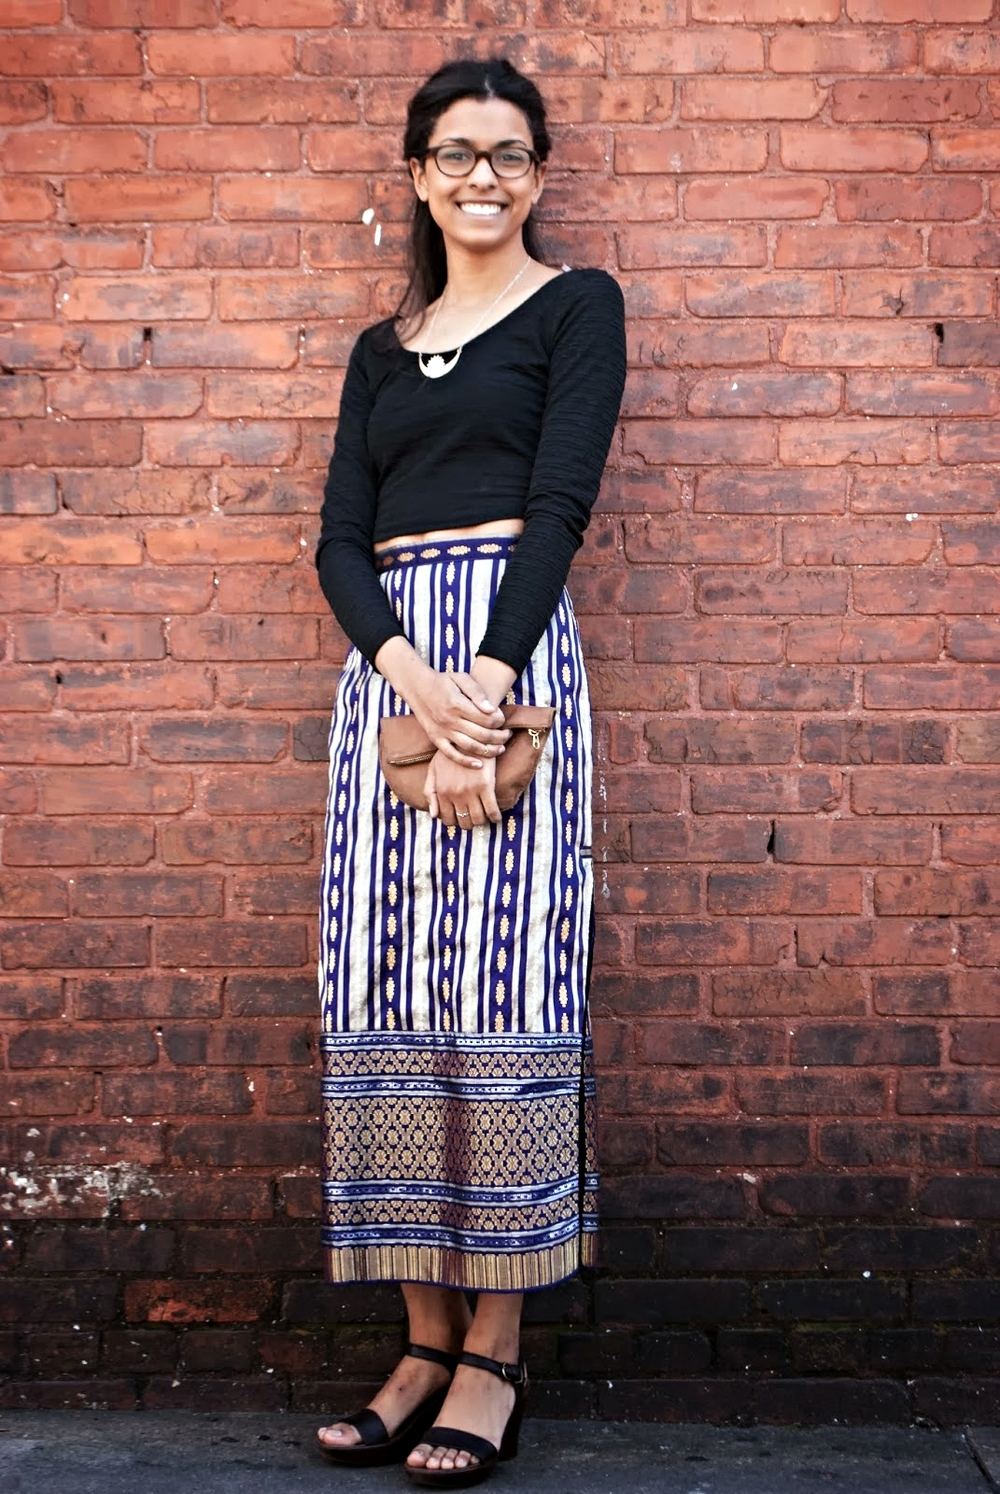 Dana Balch UGA Athens Georgia Indian stripe skirt goodwill  #MacysCampusTour material girl crop top, chunky wedges, stacking rings by Rhys May, Lauren Hill necklace and simple Baggu pouch